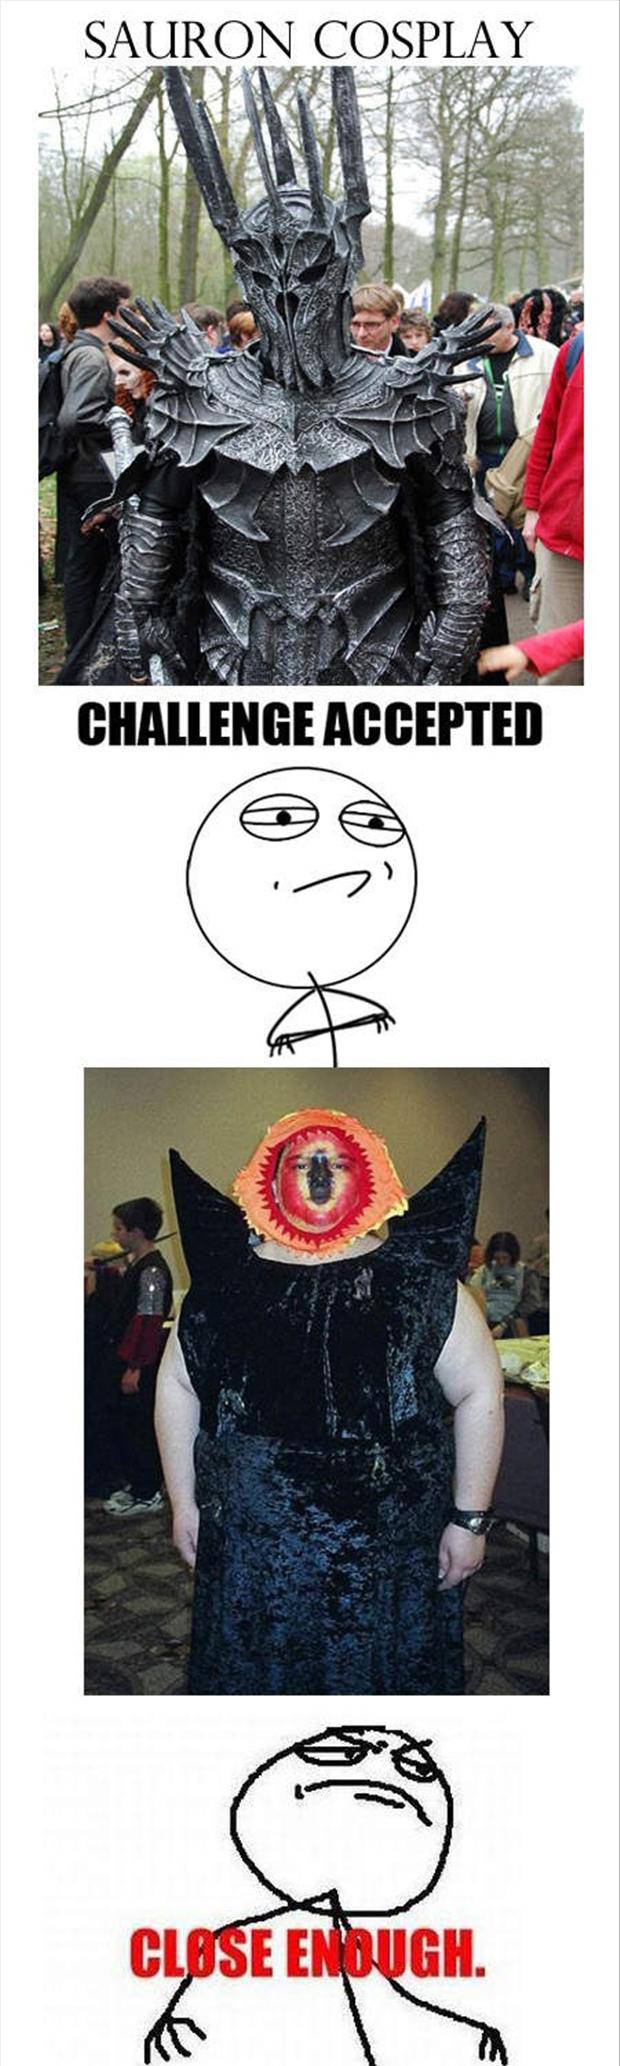 challenge accepted, funny memes, close enough